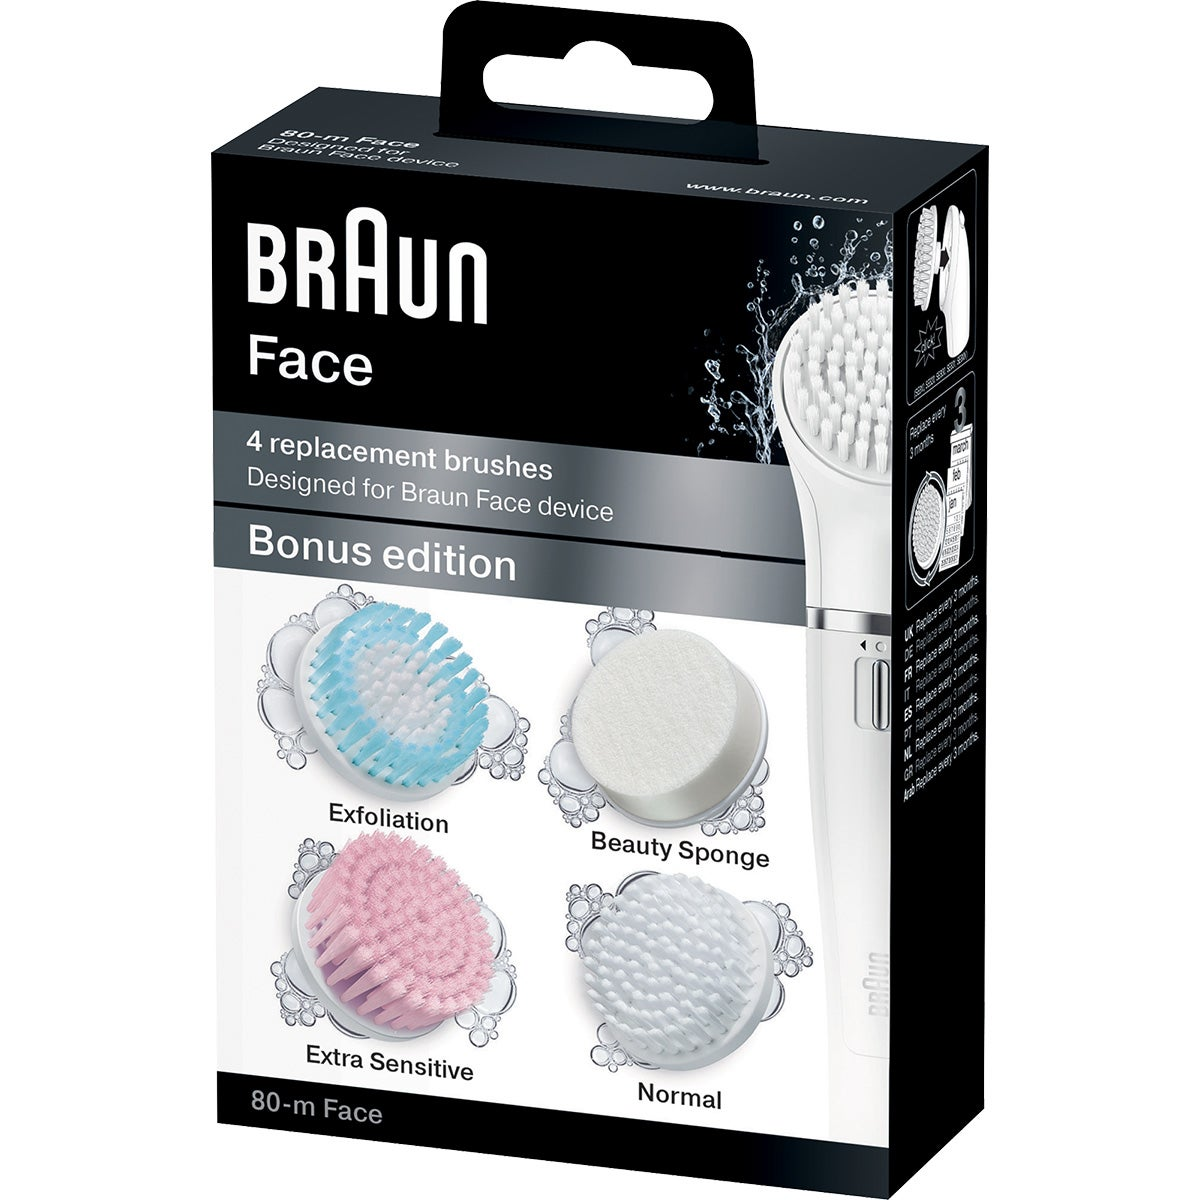 Braun Face Brusches Refill For Face Device